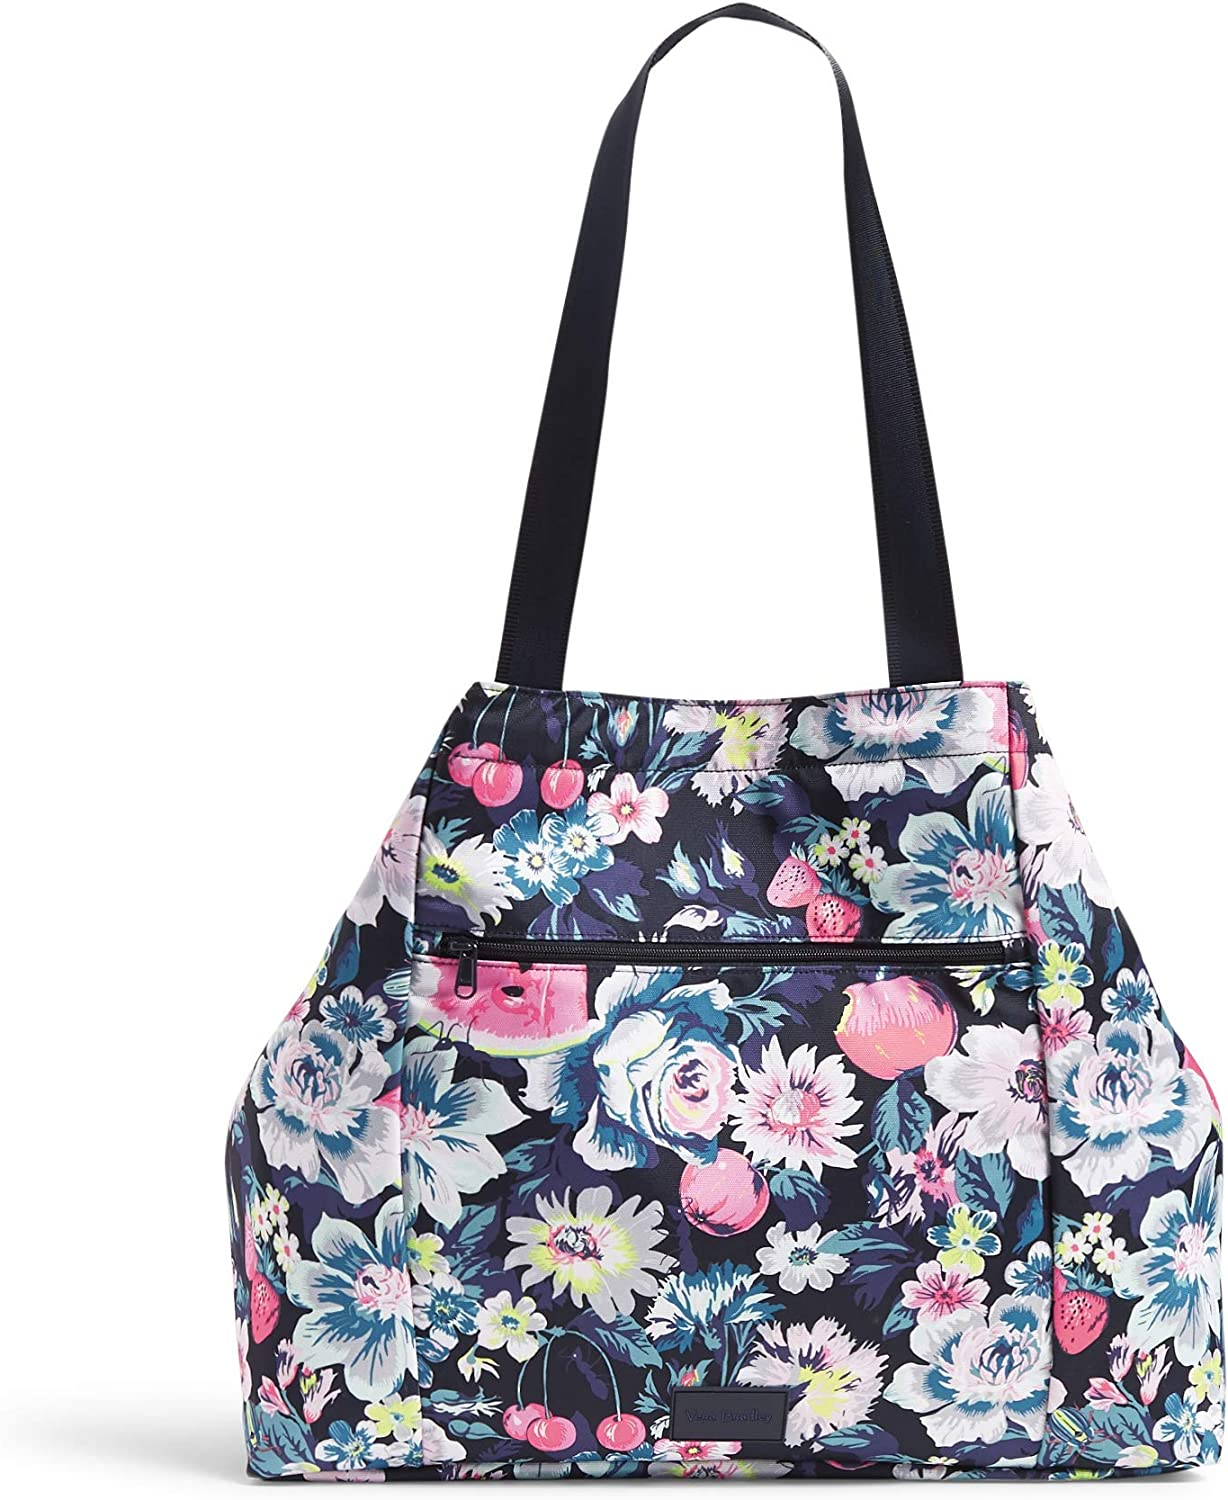 Top 8 Garden Party Style Bag